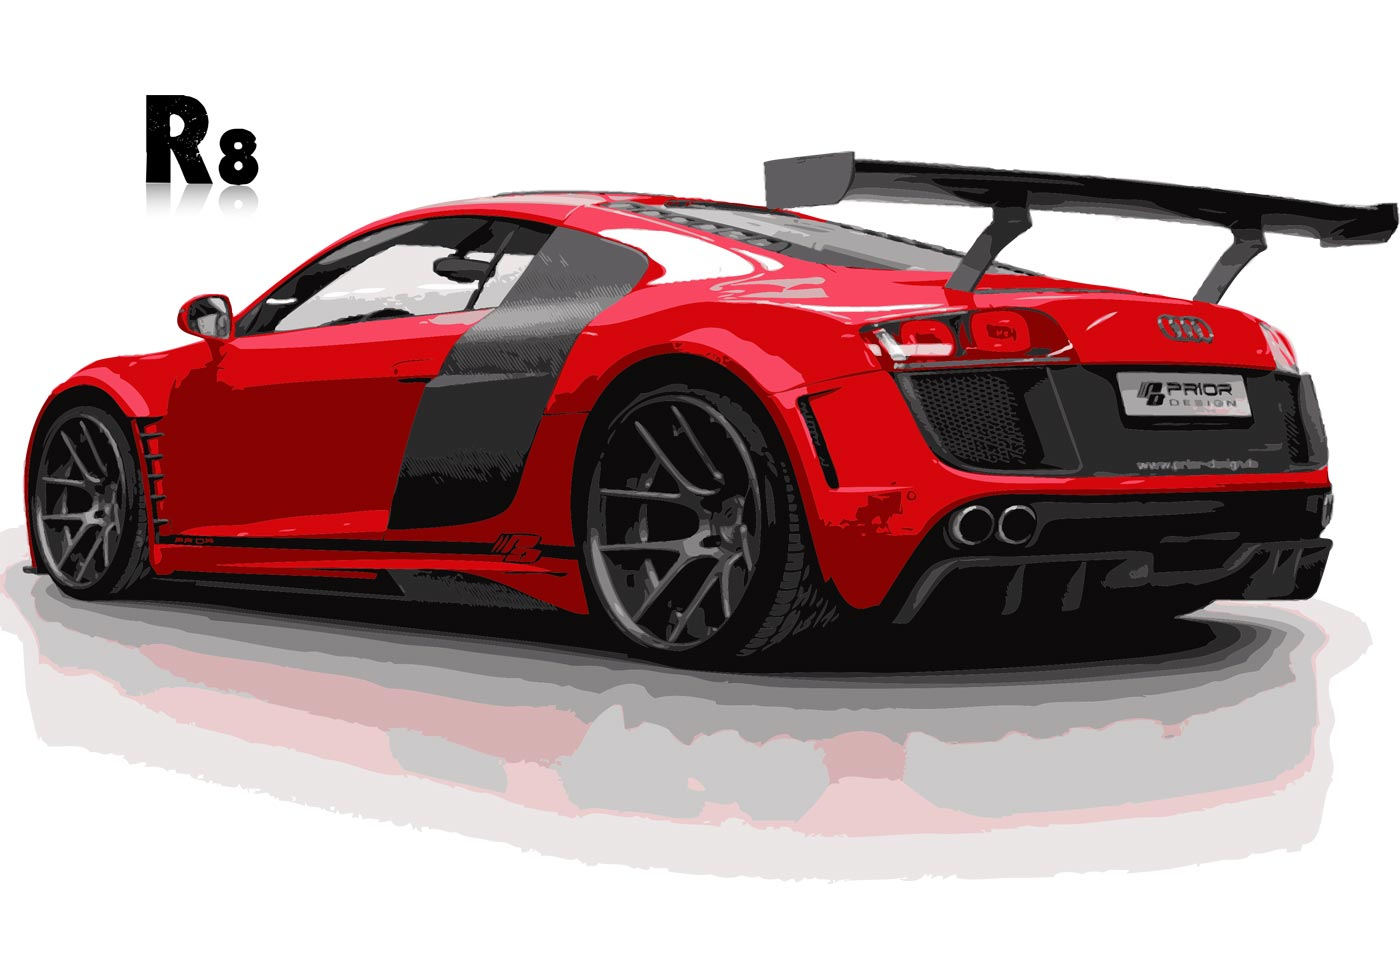 Audy R8 Sportscar Vector | Free Vector Art at Vecteezy!